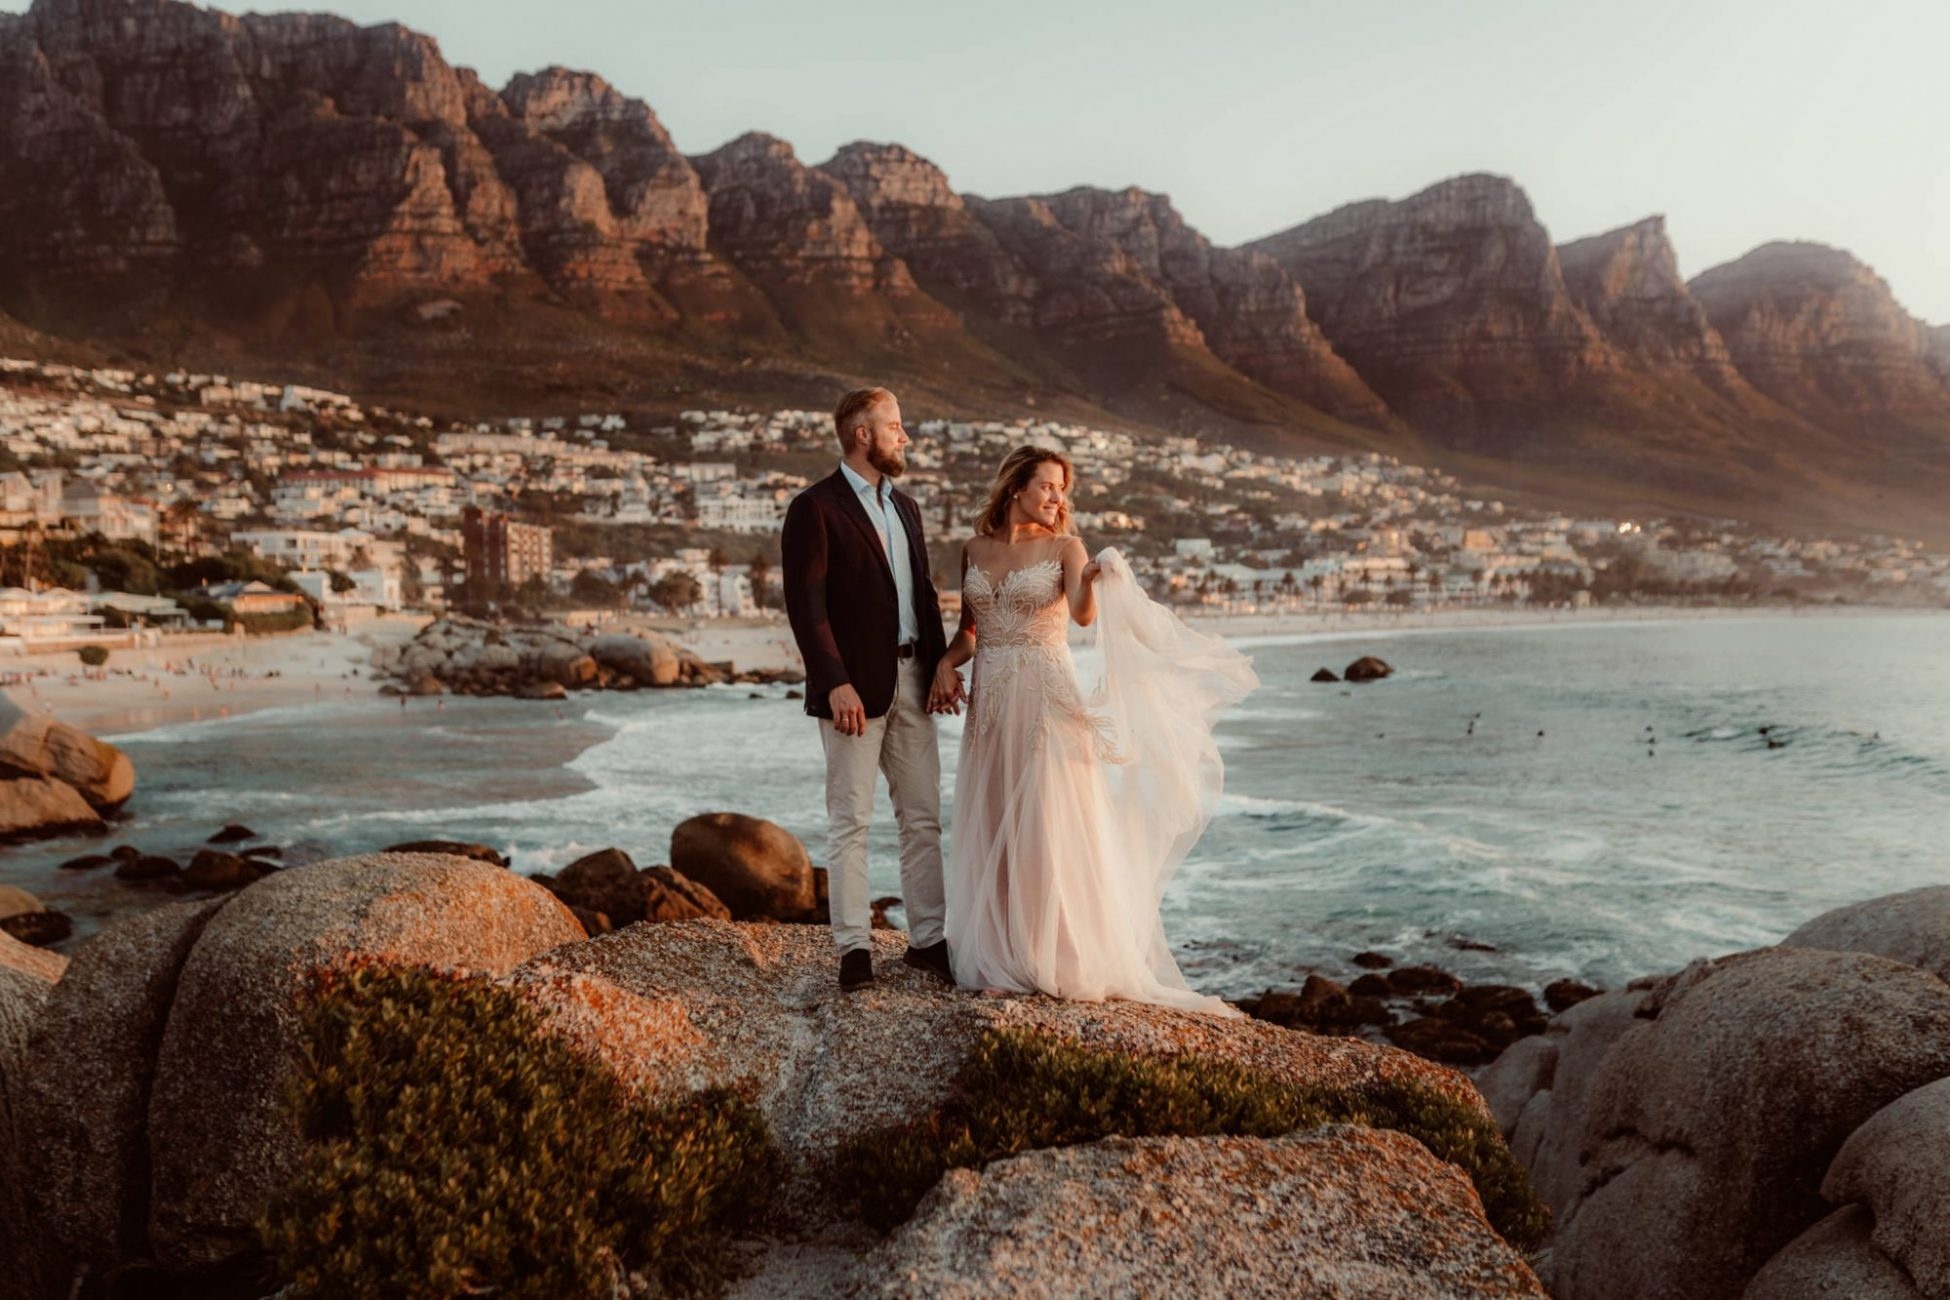 camps-bay-post-wedding-couple-photoshoot-cr8tiveduo-photographer-sunset-walk-ocean-mountains-views-dress-holding